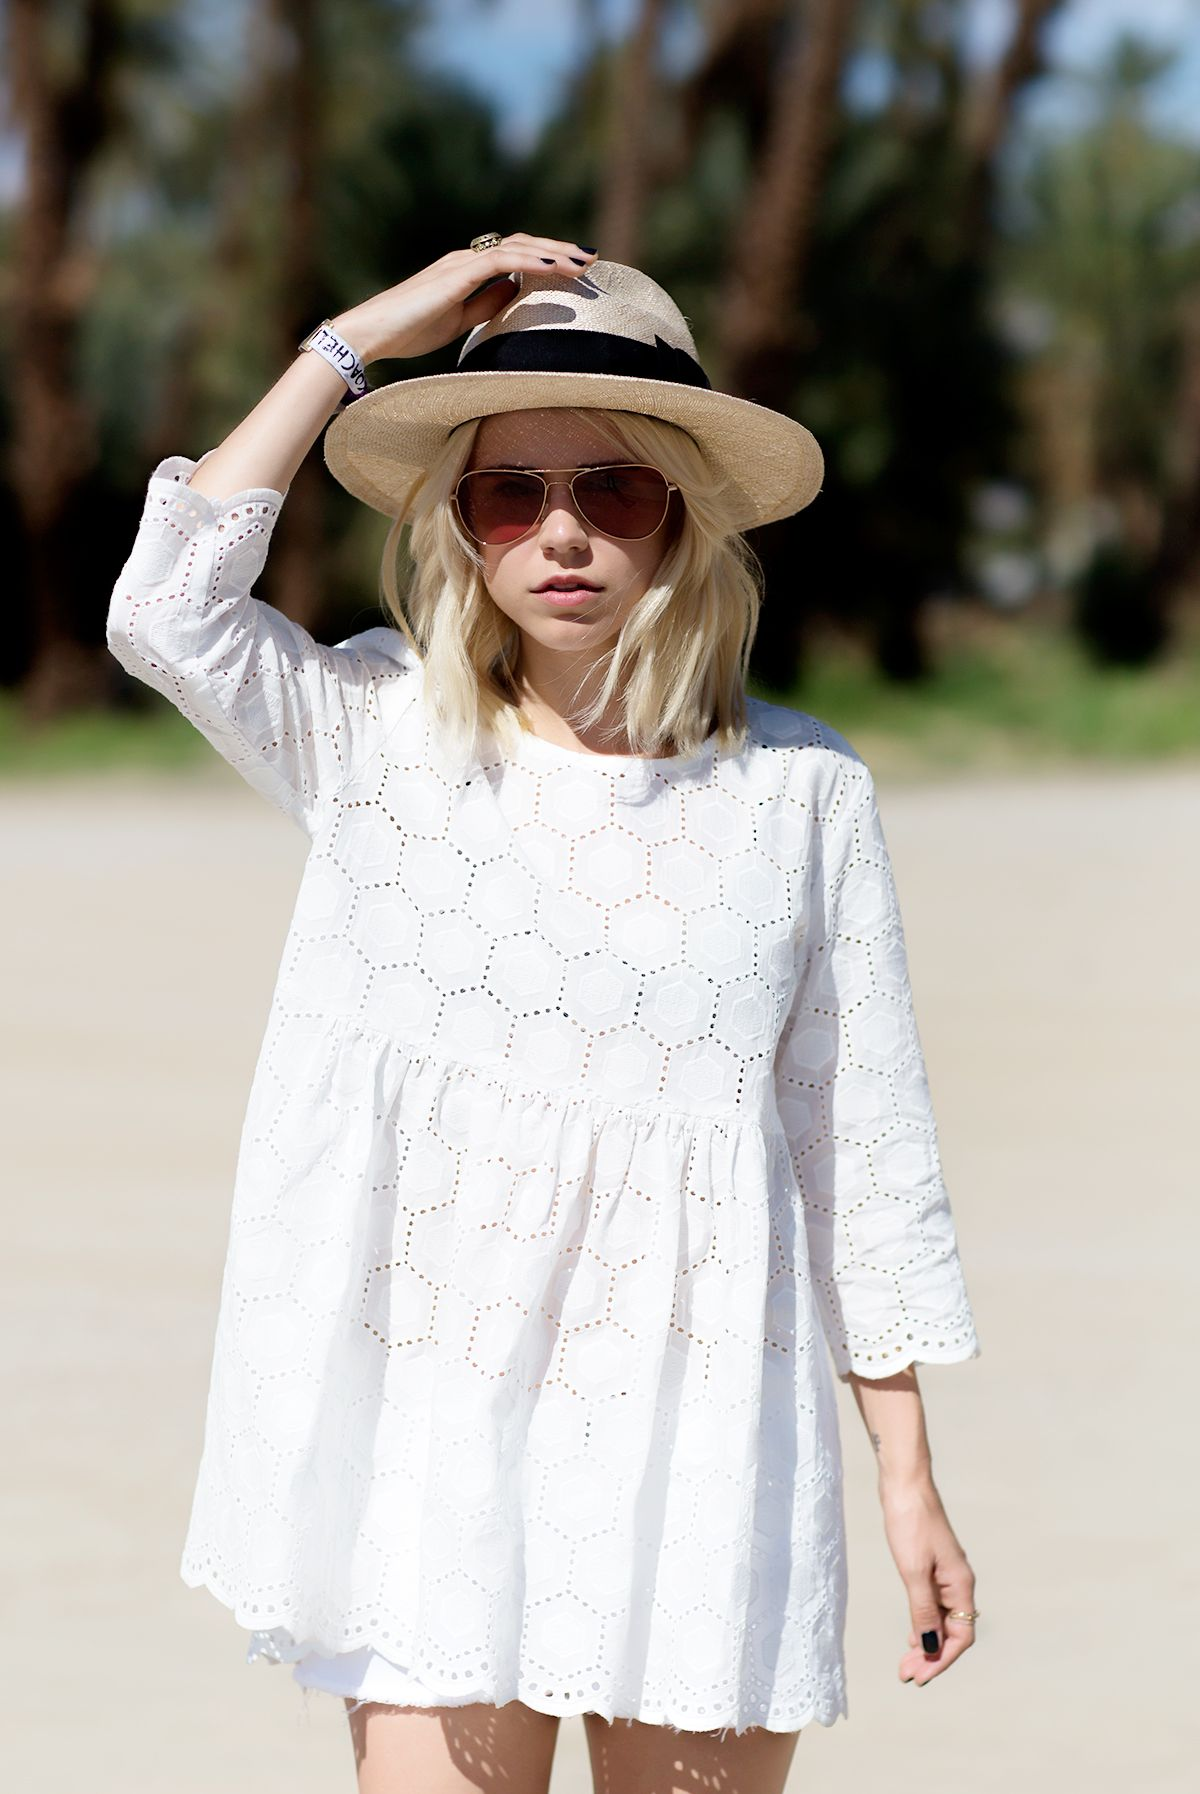 white lace and hats #styleinspiration